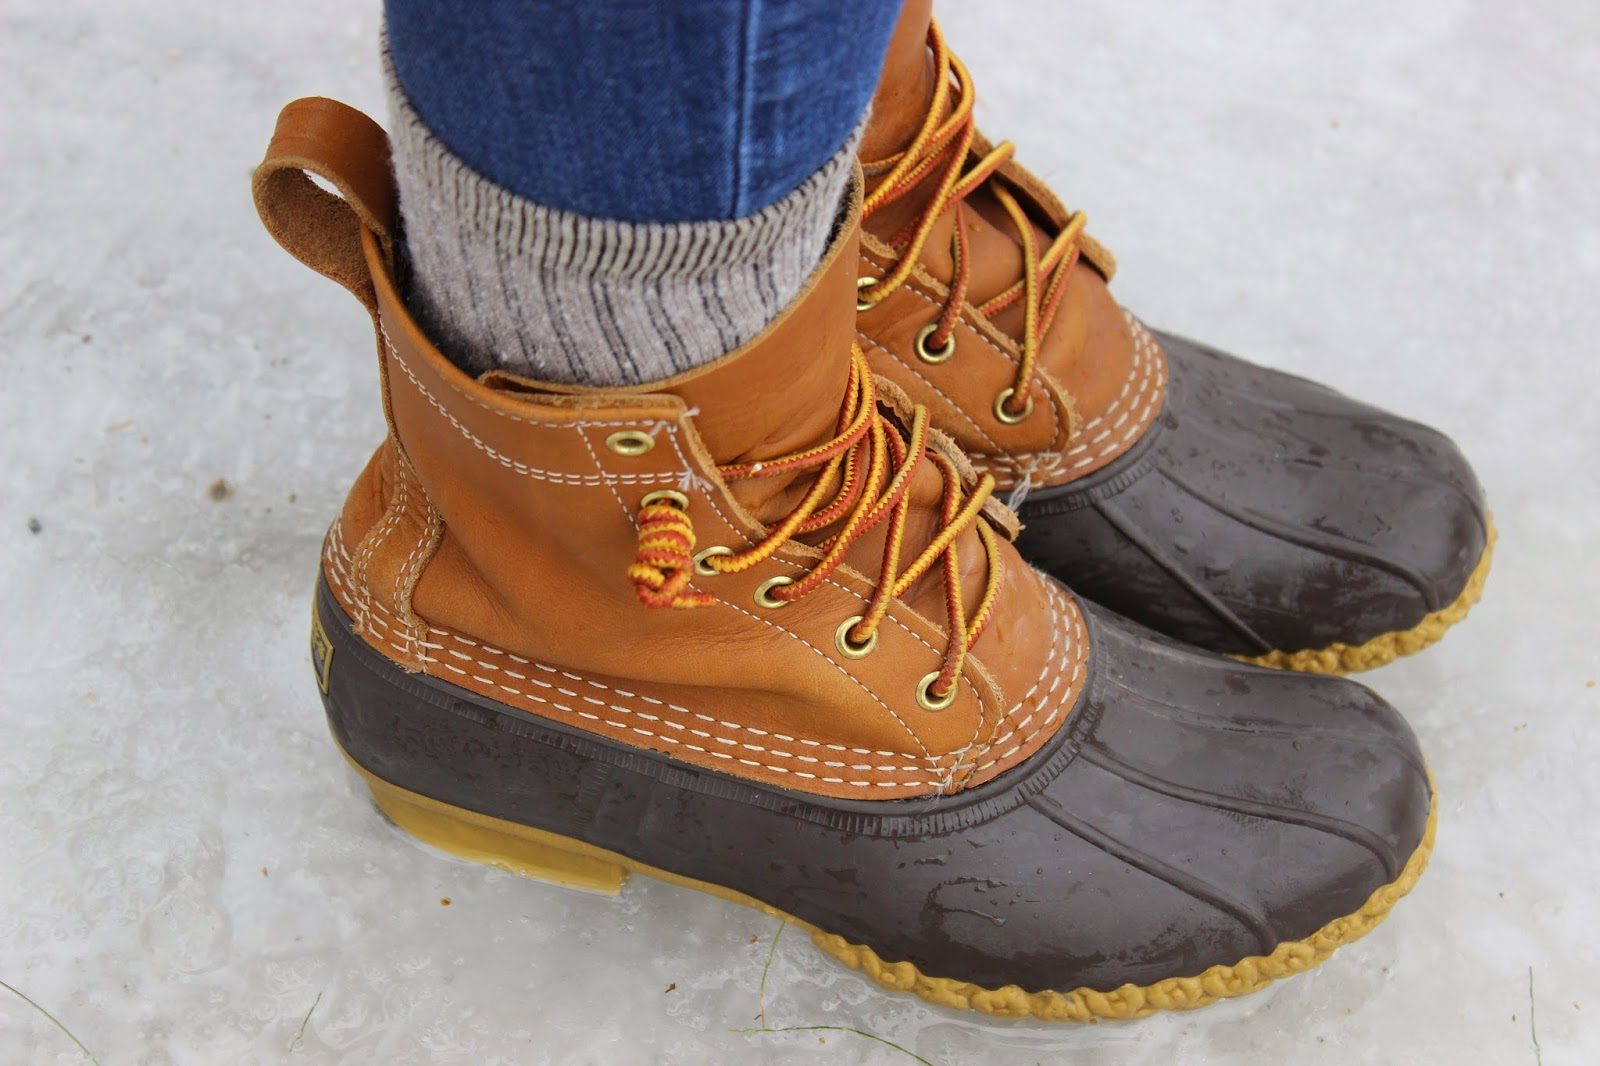 Ll bean duck boots frat - photo#22